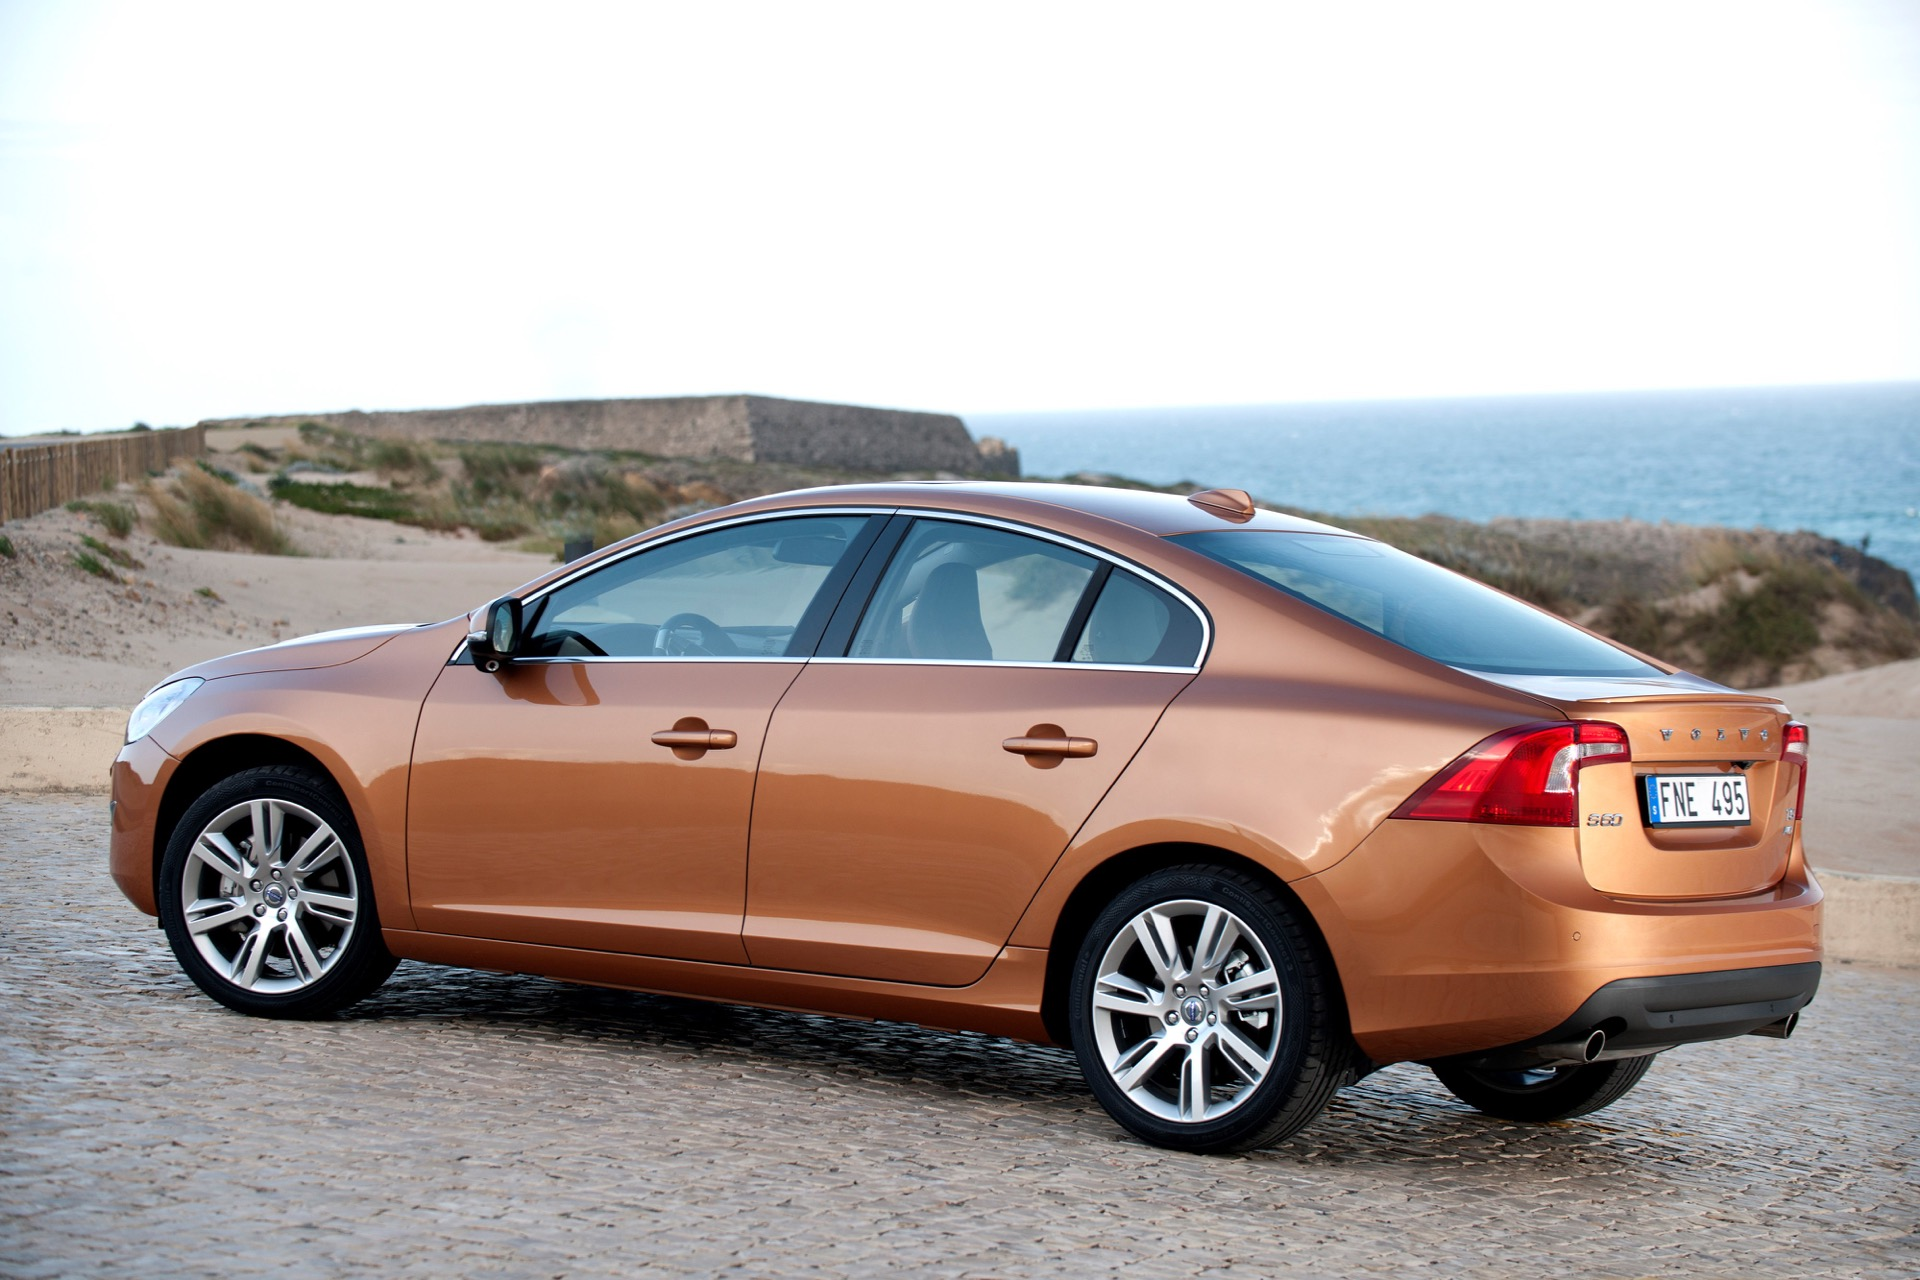 The All New Volvo S60 On The Road In The Region Of Sintra Portugal01 -  Volvo